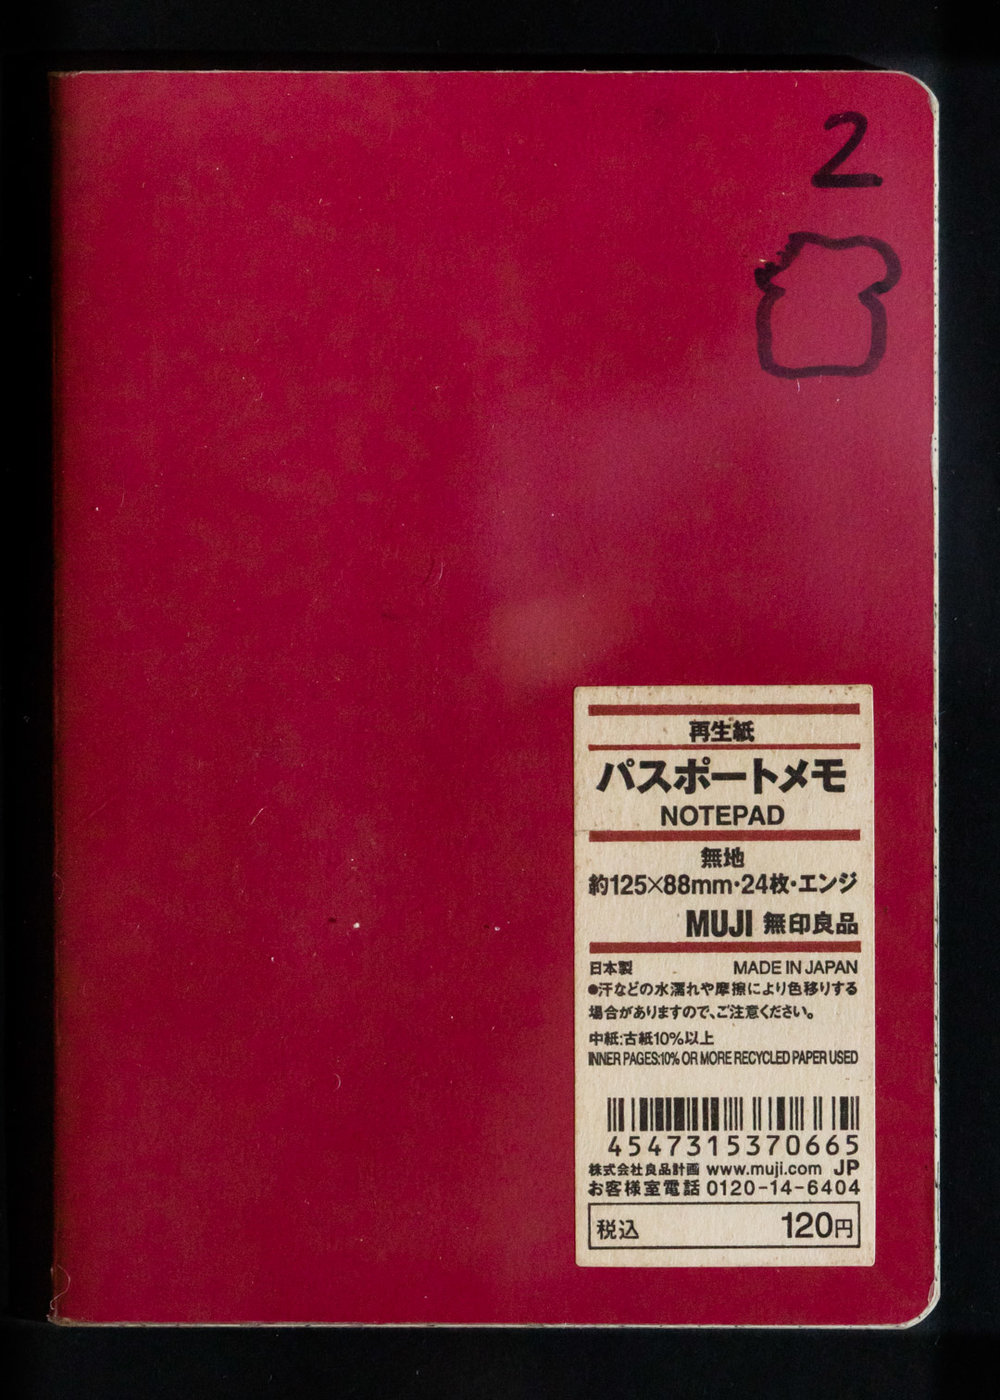 02-00 Front Cover.jpg